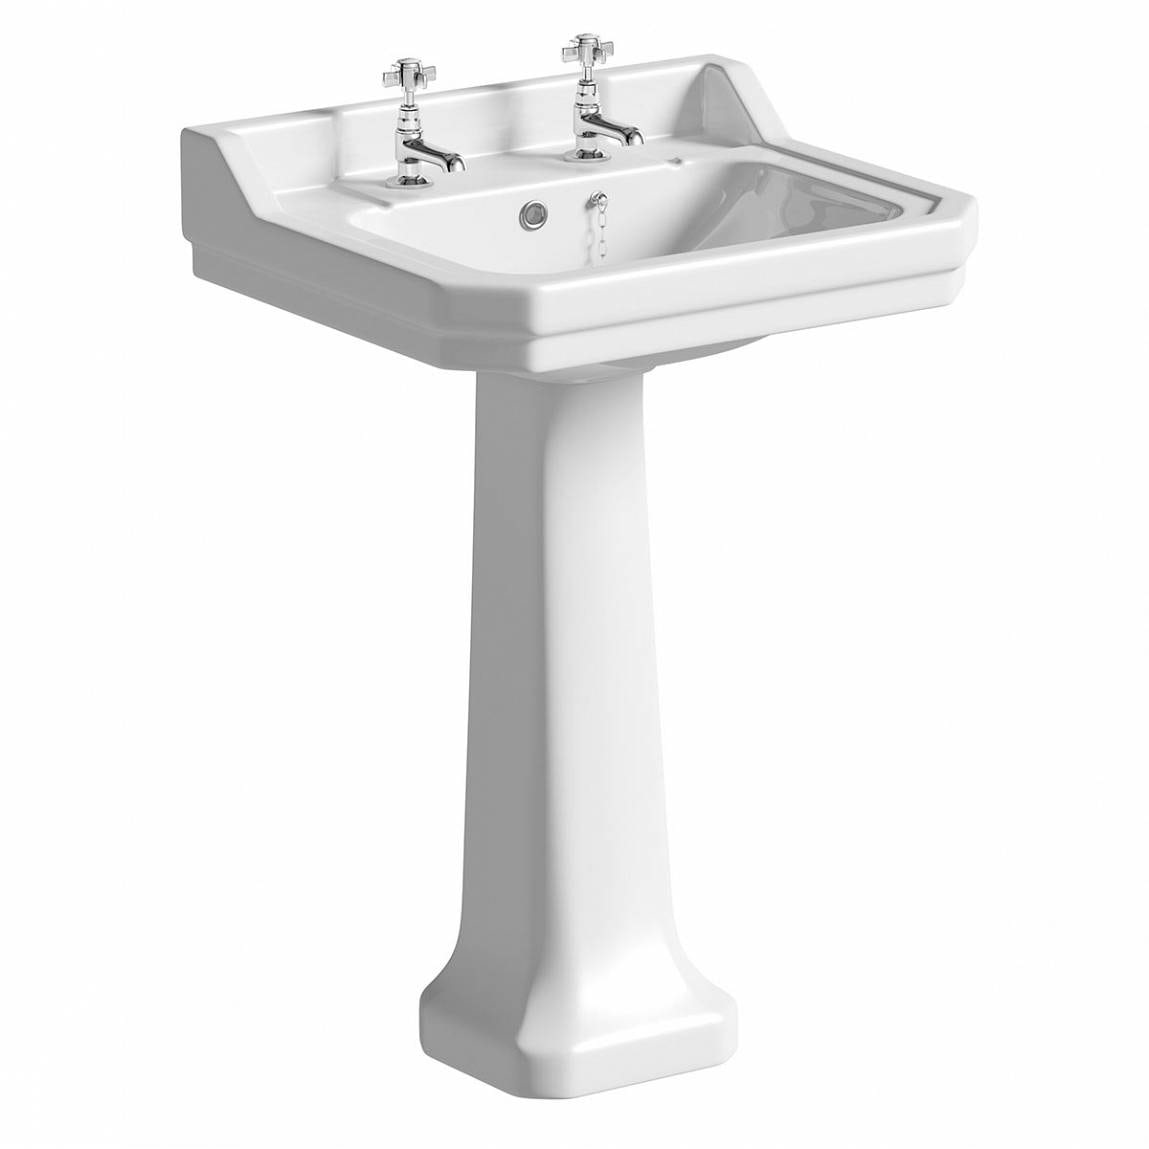 The Bath Co. Camberley 2 tap hole full pedestal basin 550mm with waste